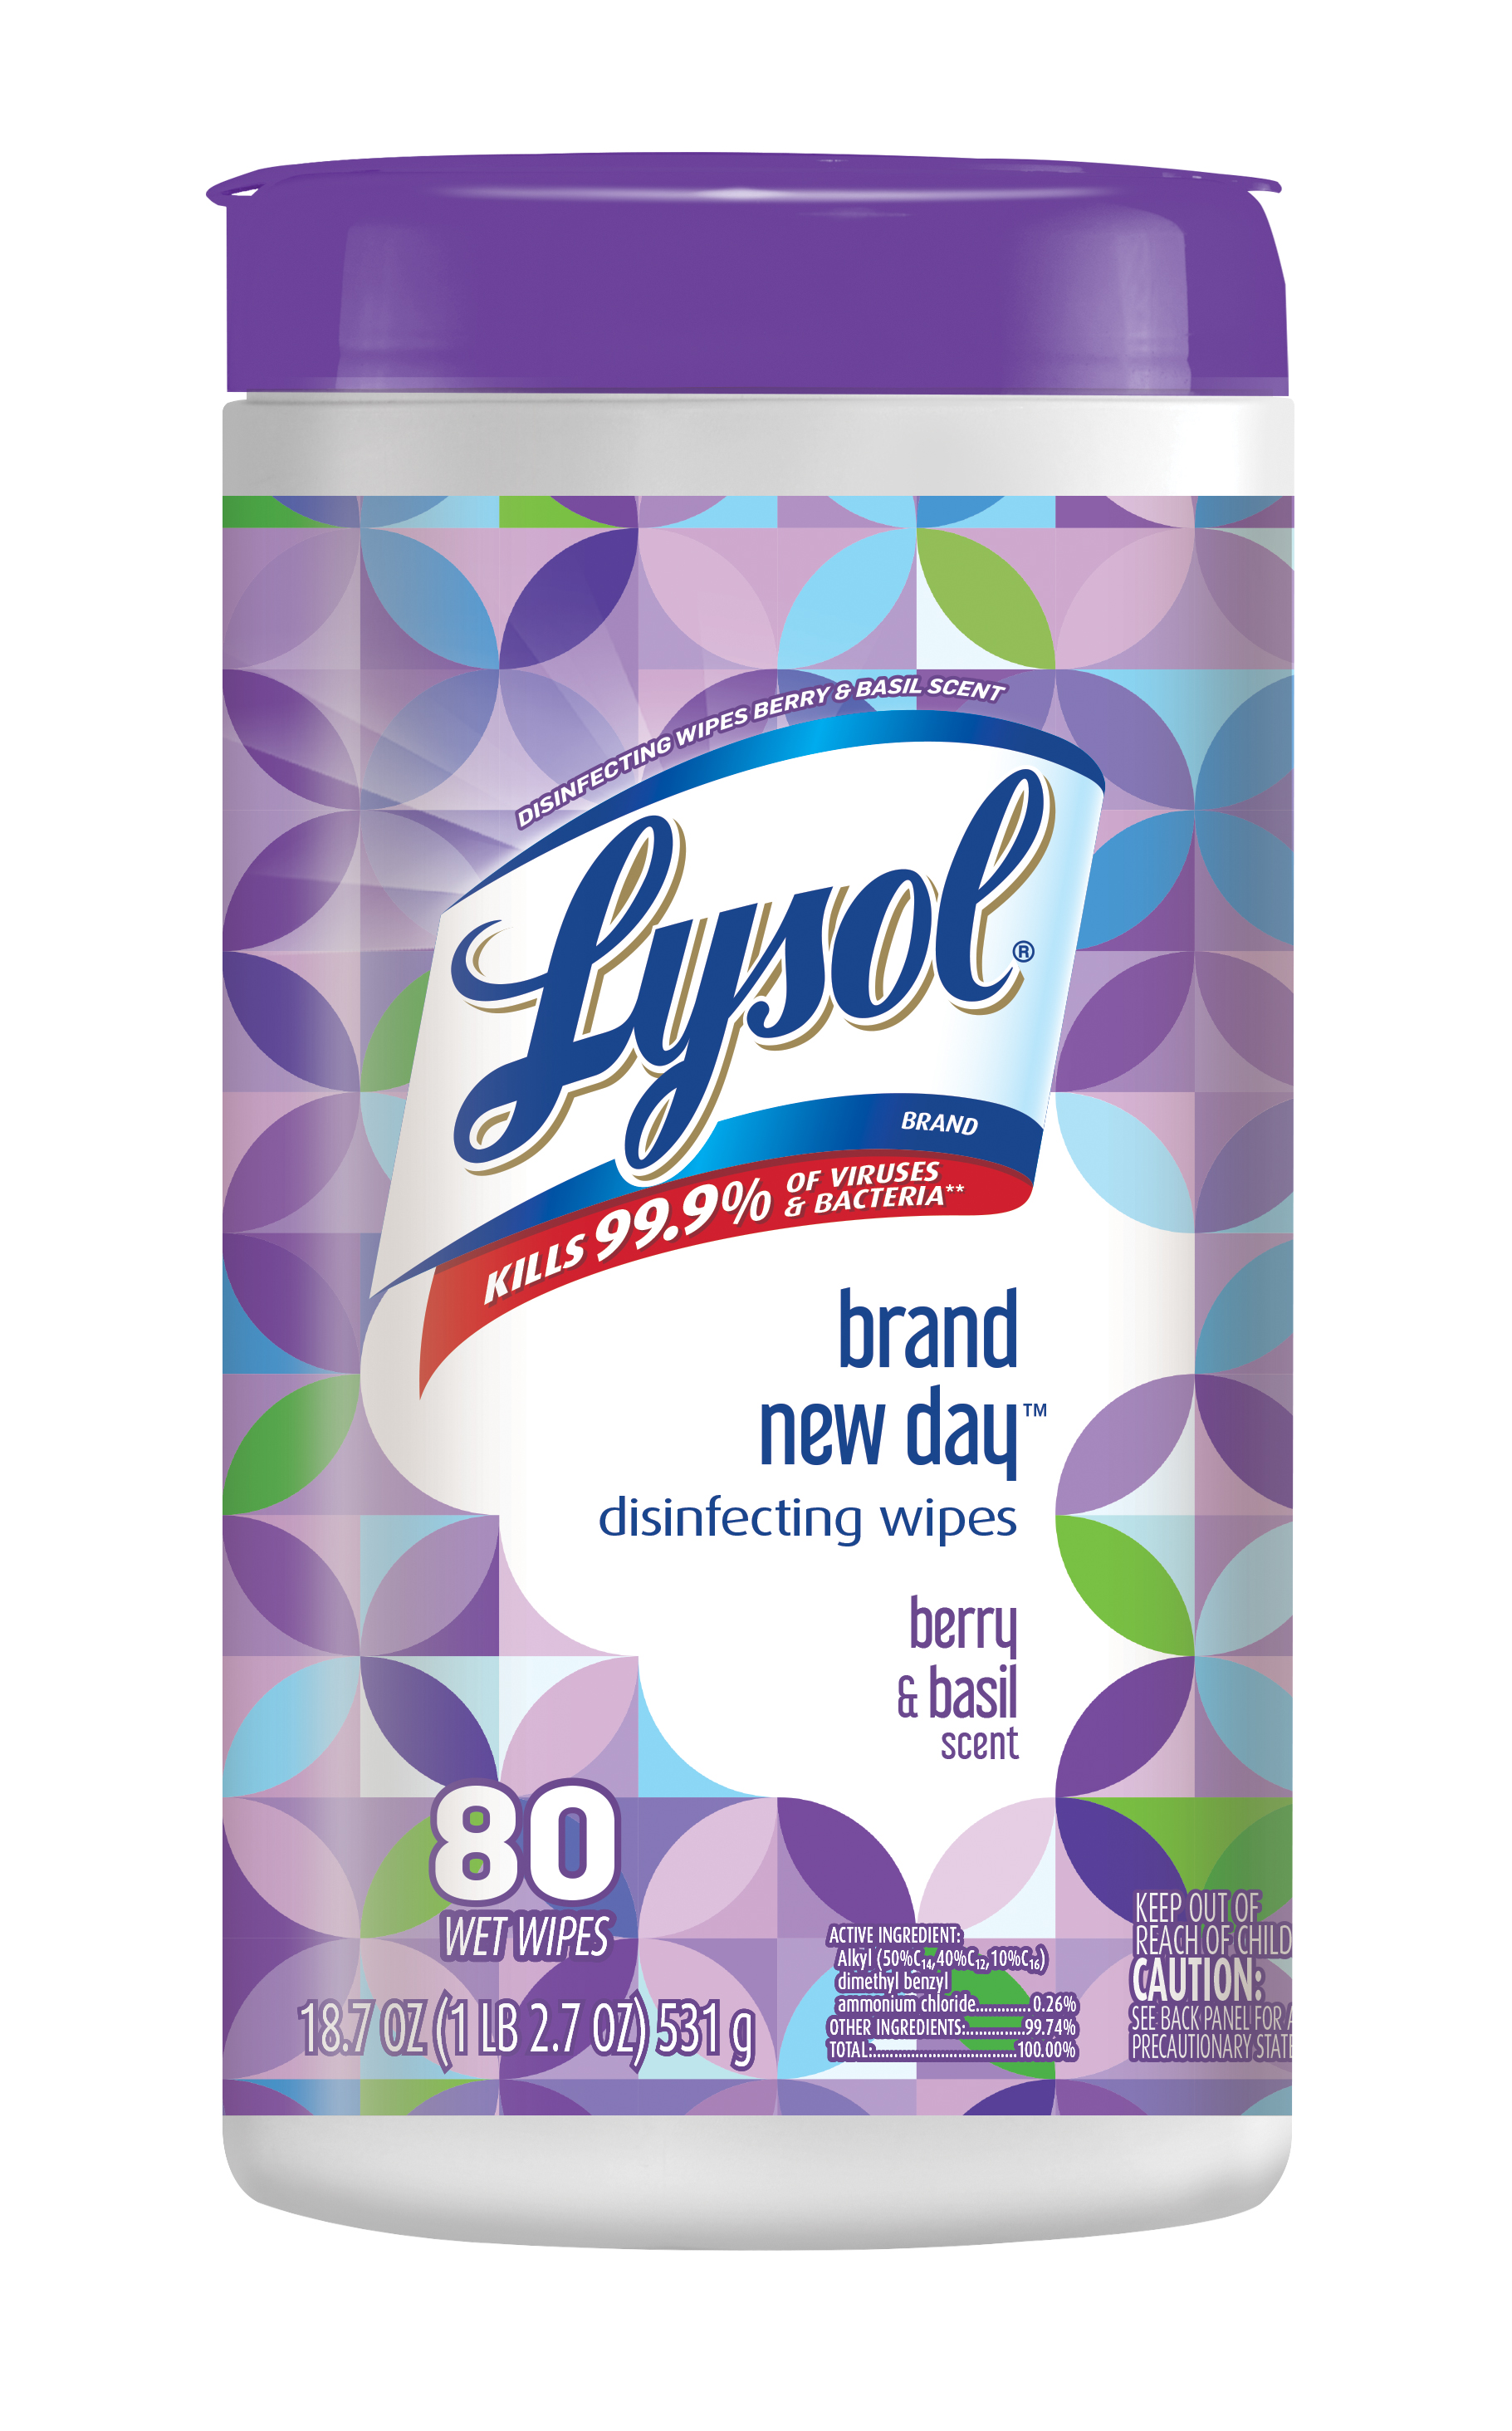 Lysol Disinfecting Wipes, Brand New Day, Berry & Basil, 80ct, Cleaner